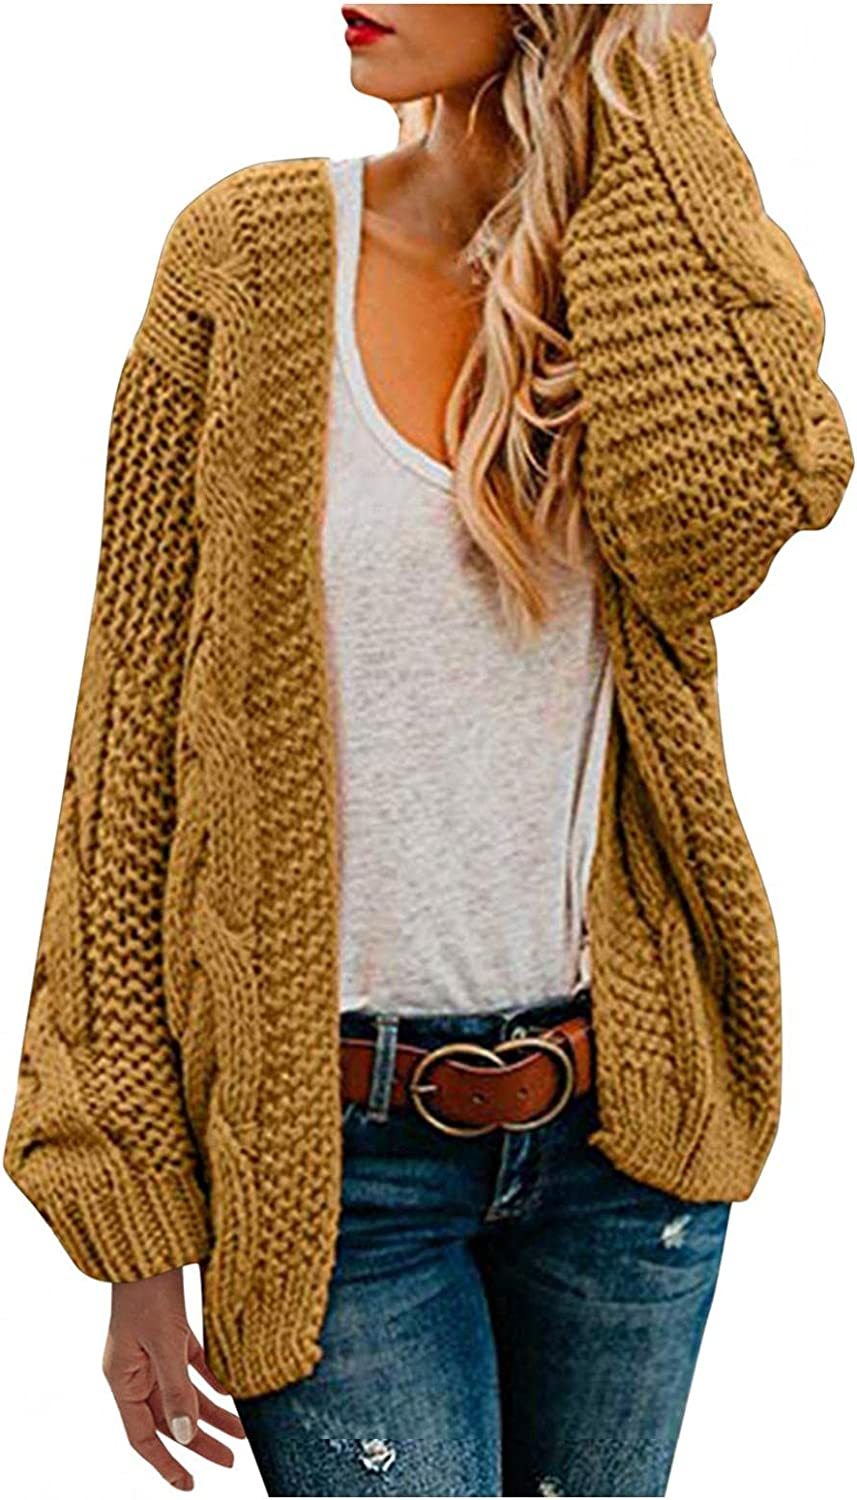 Kcocoo Womens Long Sleeve Cable Knit Long Cardigan Open Front Sweater Coat Casual Color Clock Warm Winter Outwear Blouse Tops